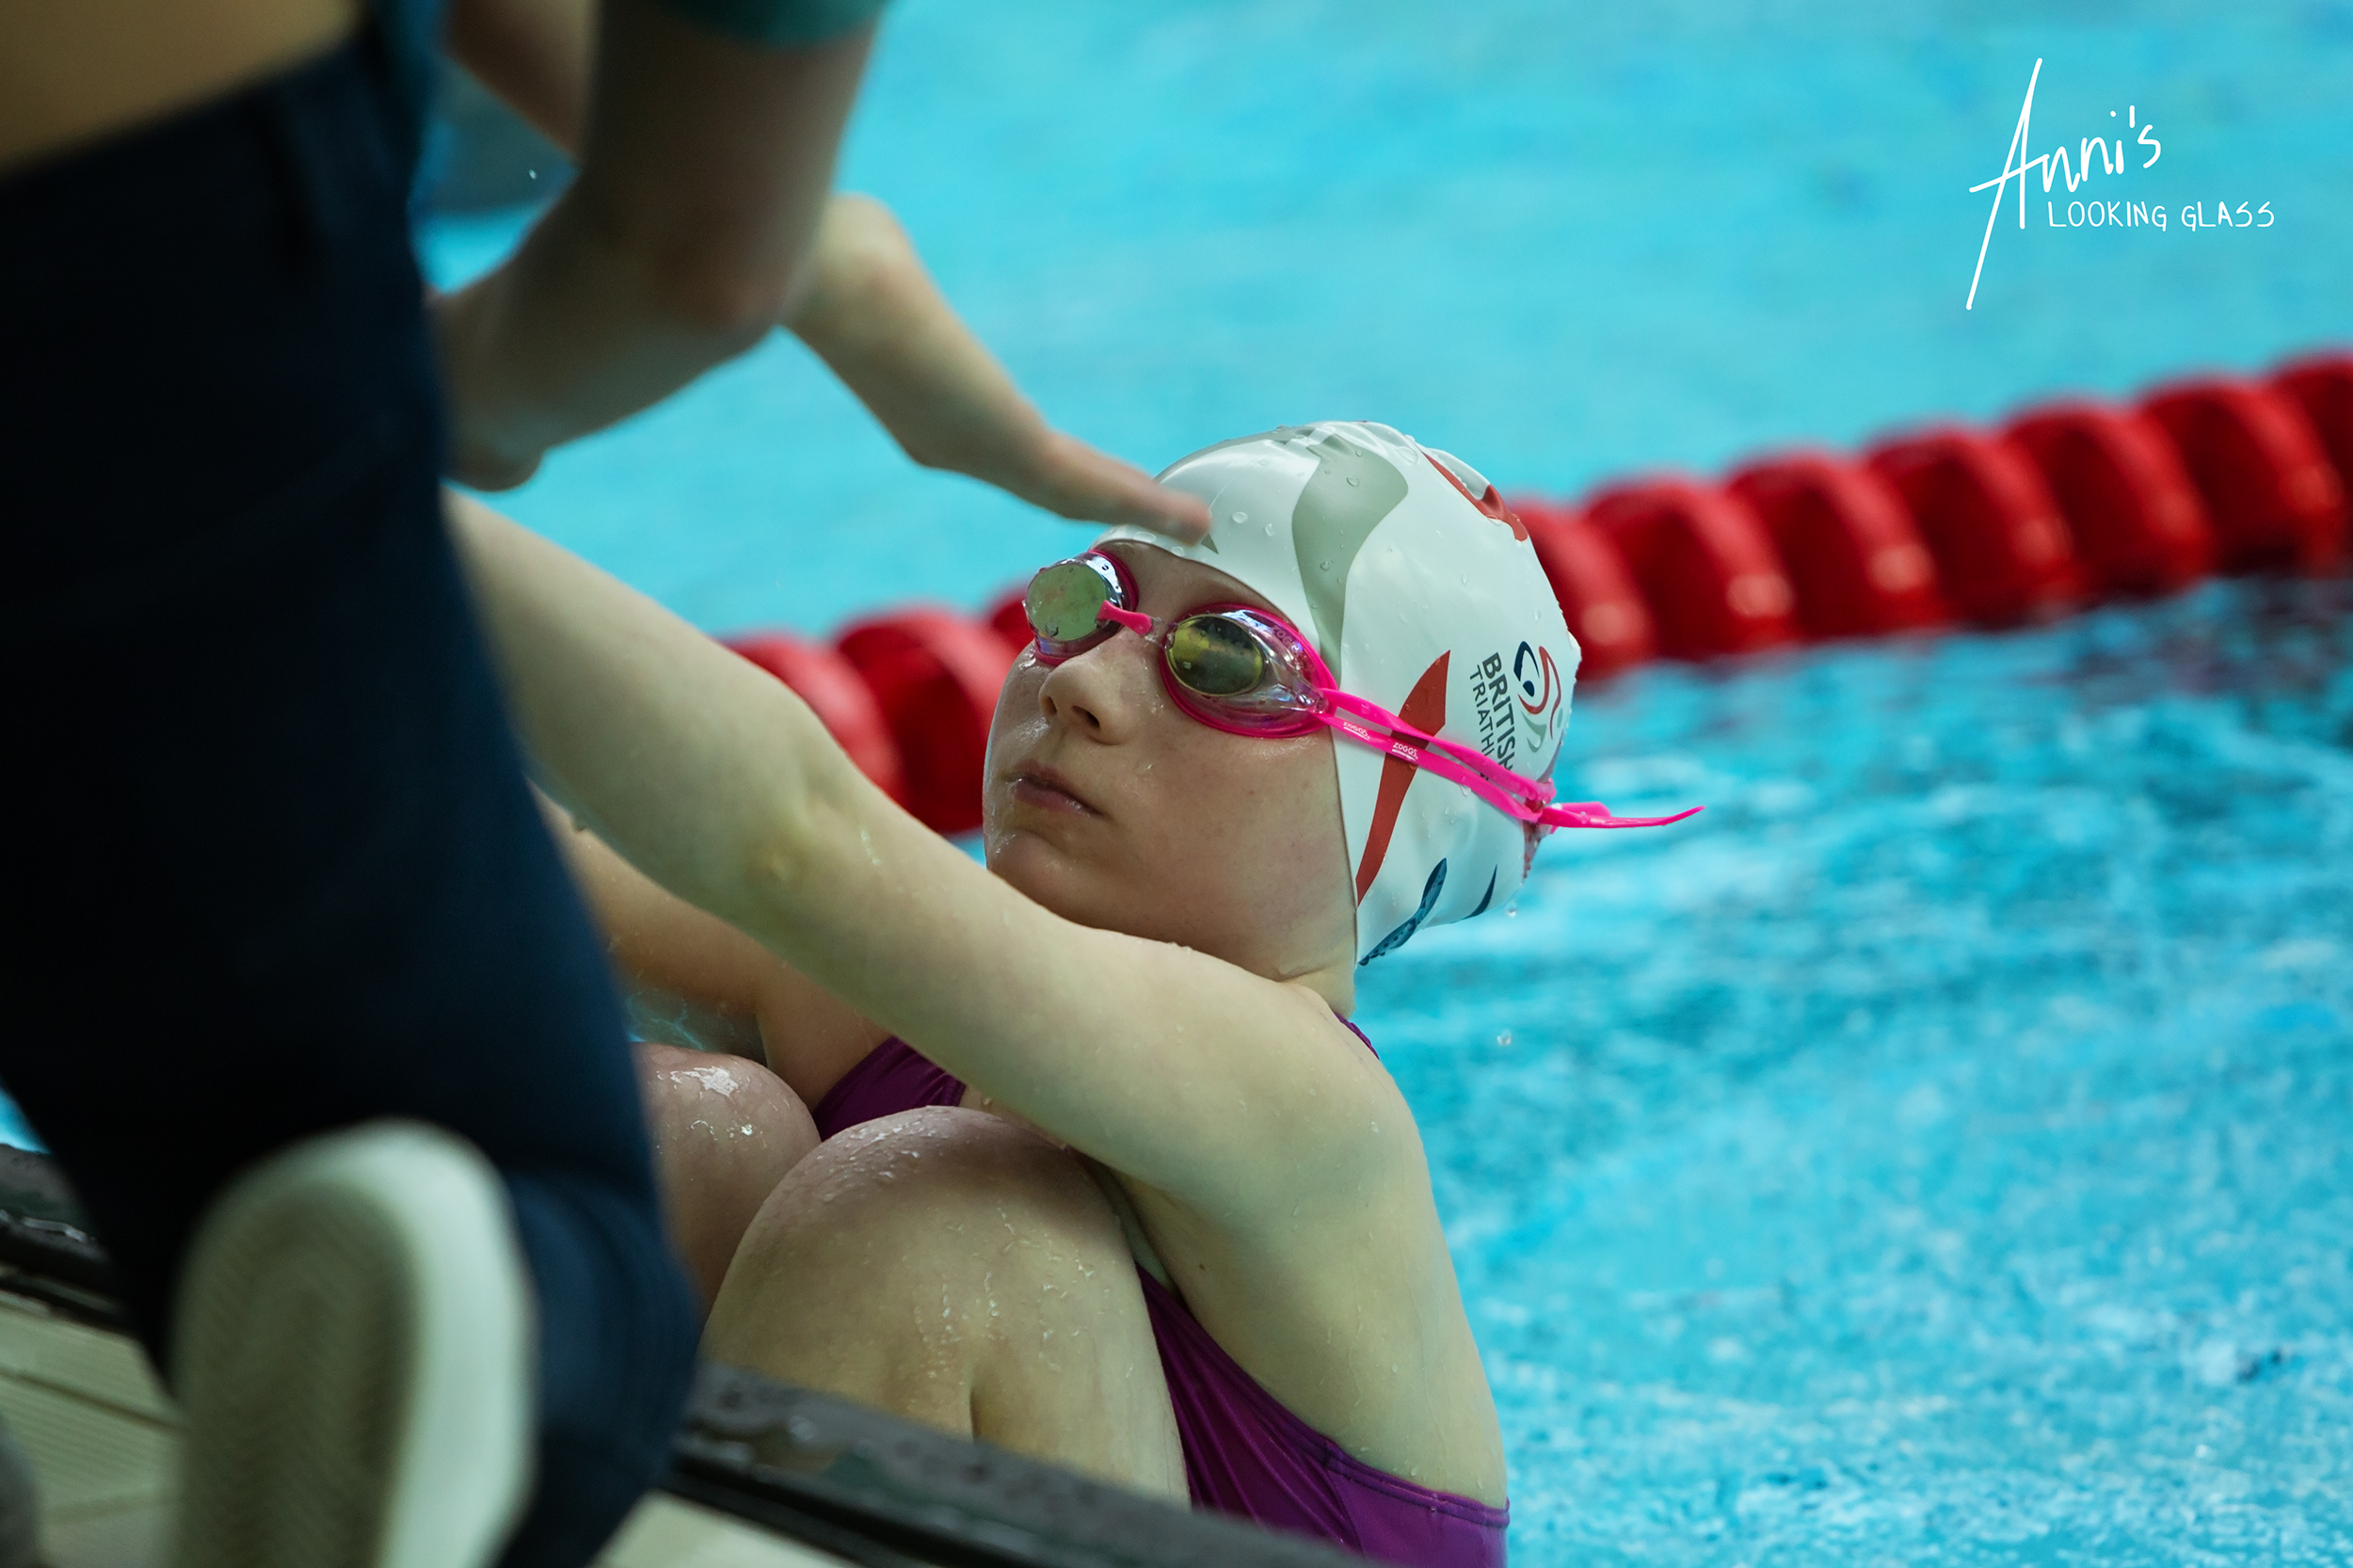 Loughborough Photographer: A young girl in a pink and white swimming outfit waiting for the start signal to her race at Loughborough University's pool. 24th March 2018